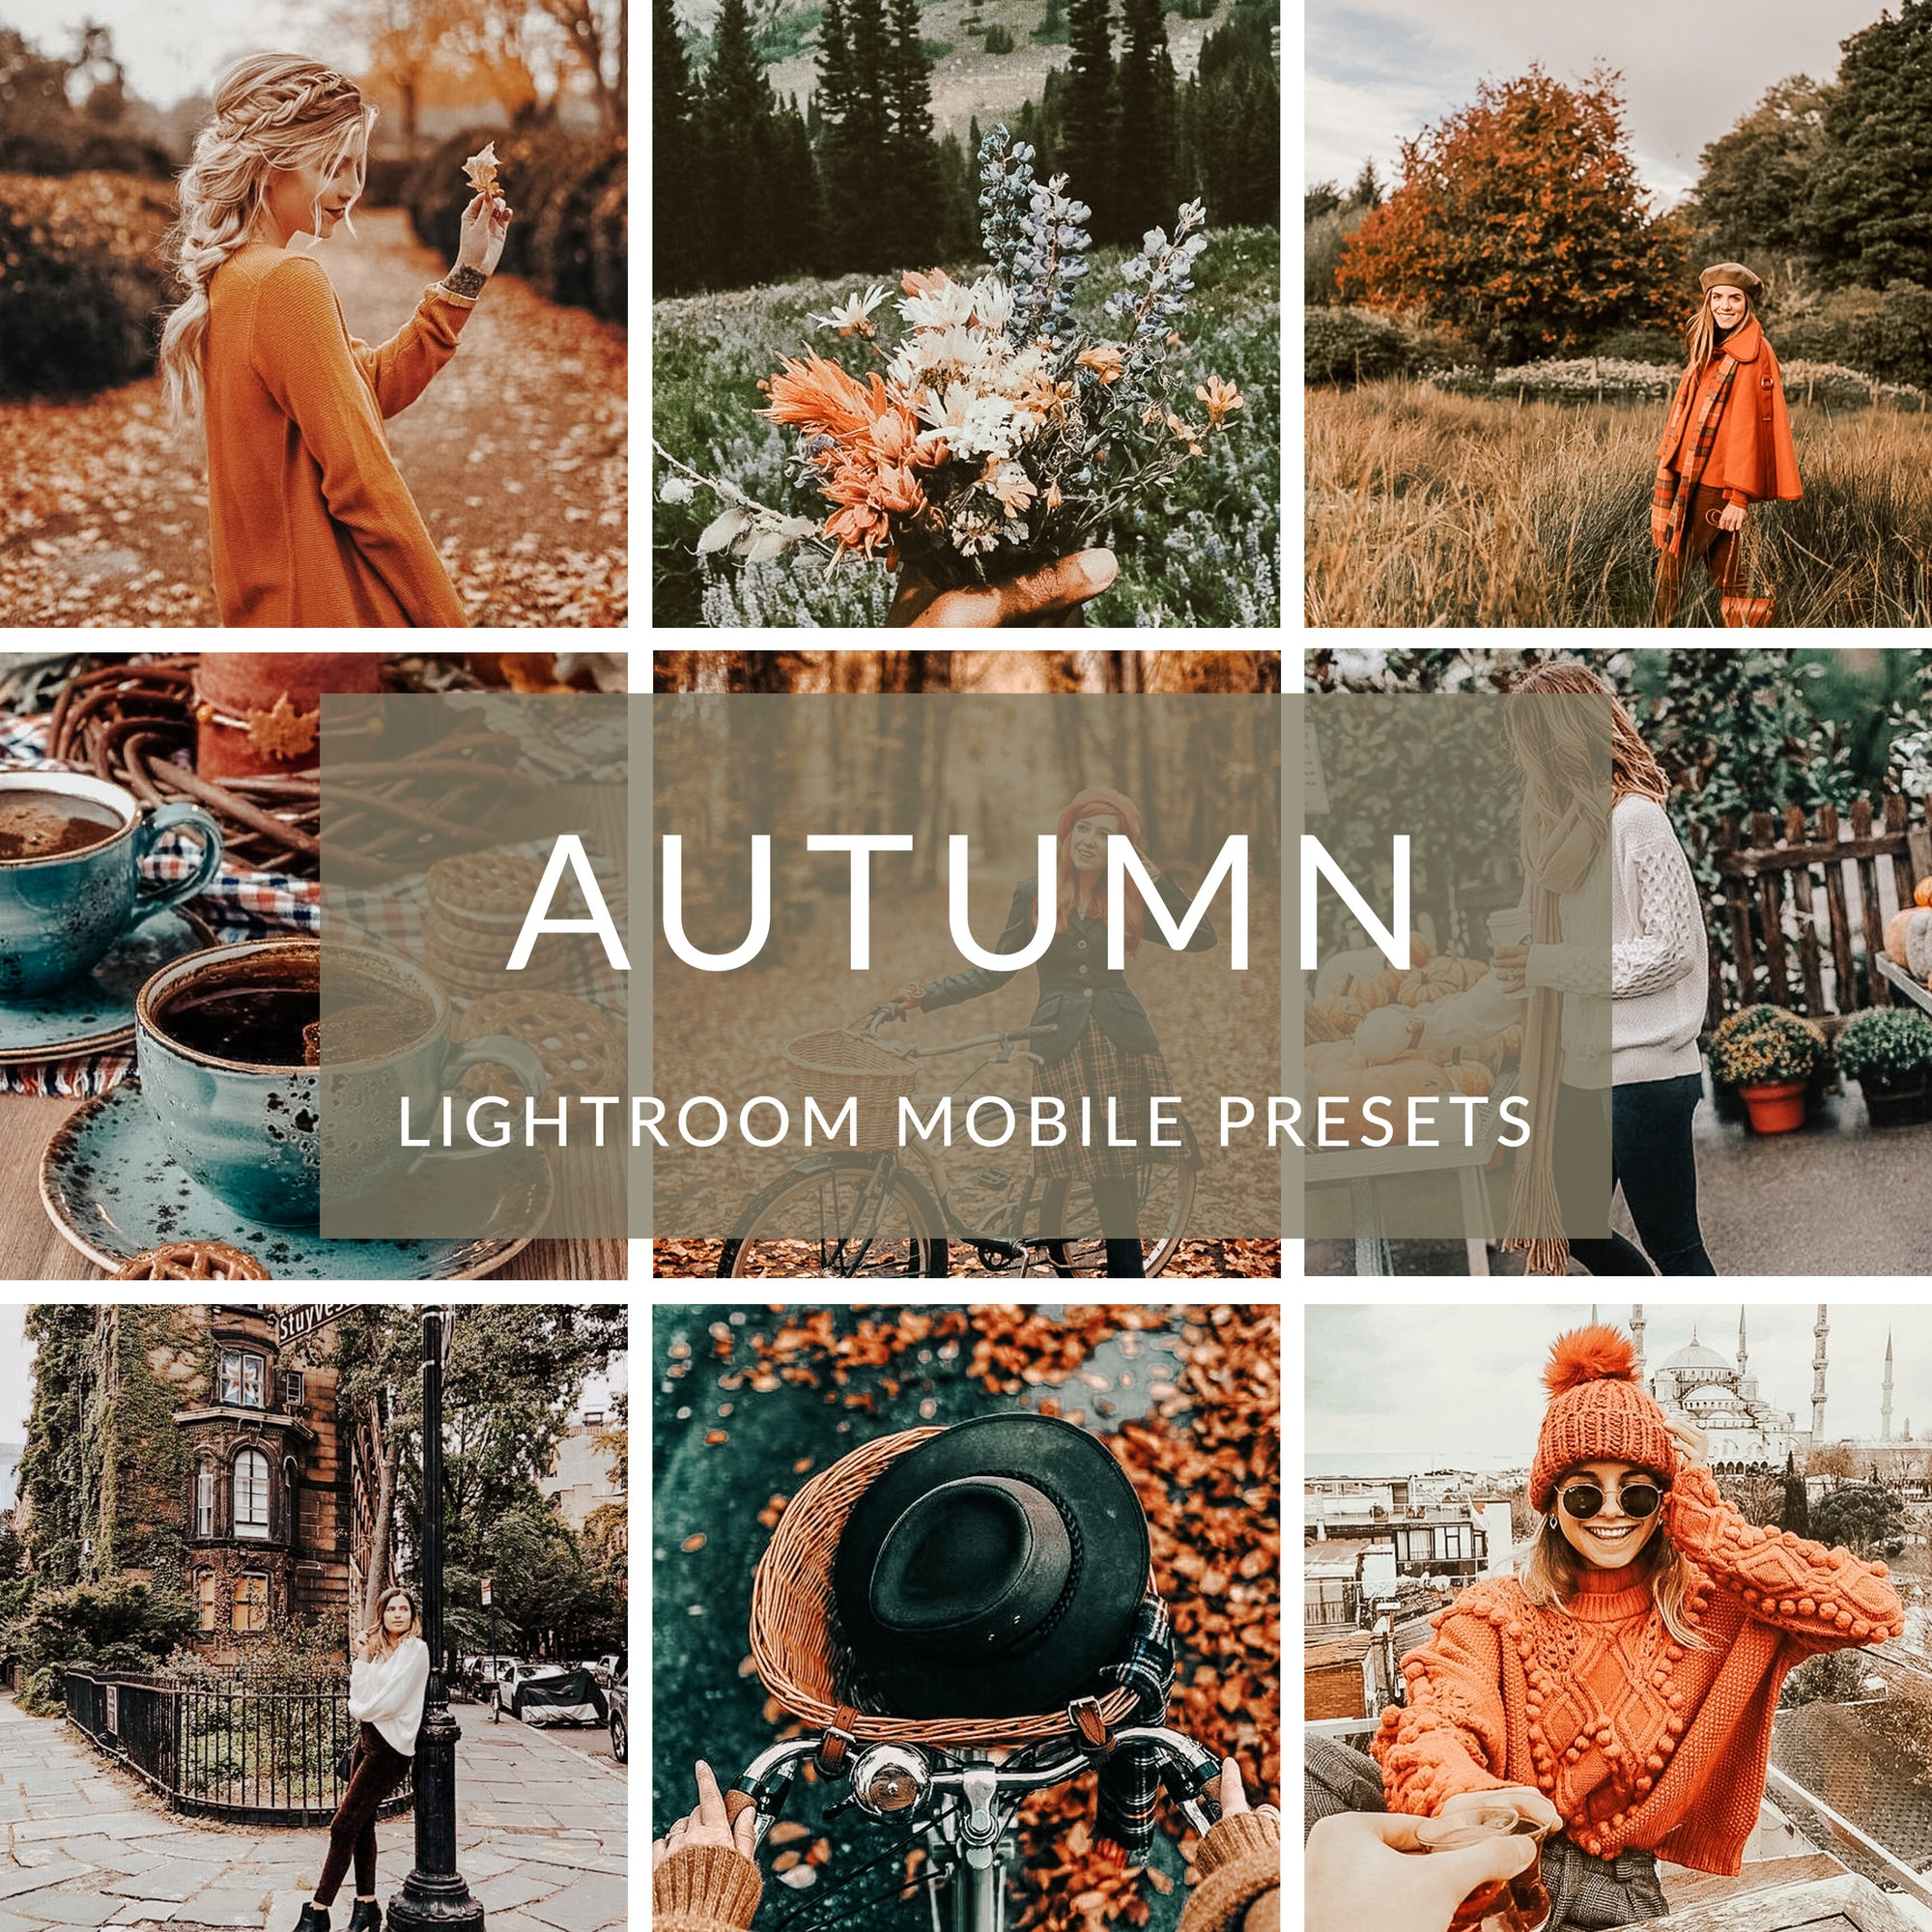 Autumn Lightroom Mobile Presets